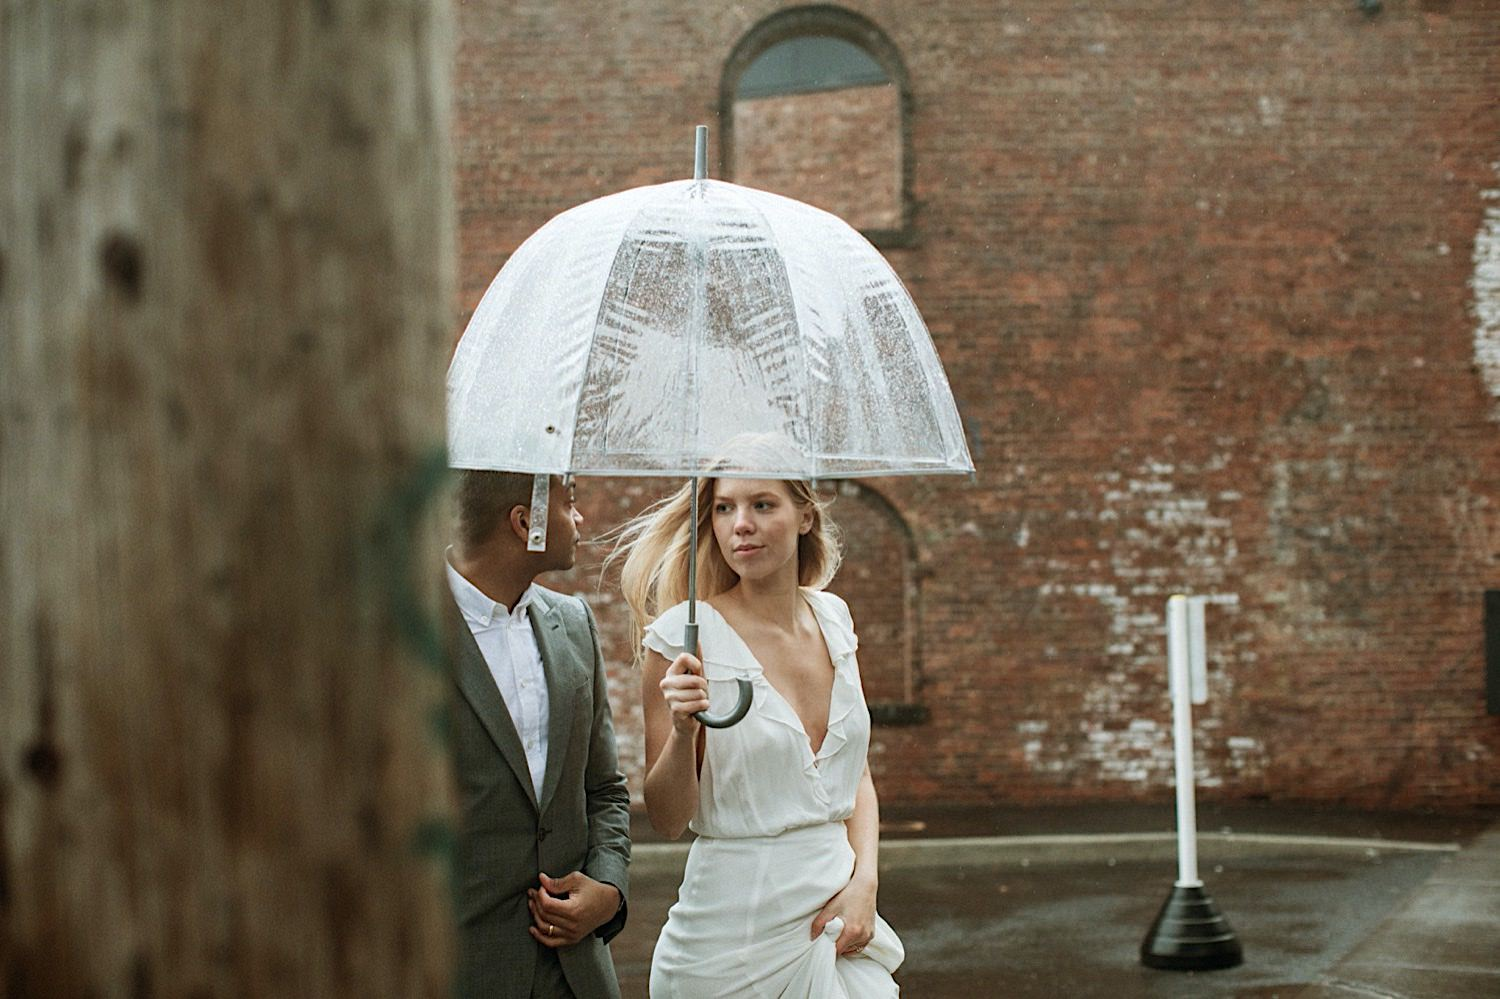 DUMBO Wedding Photography - Wedding Bride and Groom walk candidly under and umbrella in DUMBO NYC